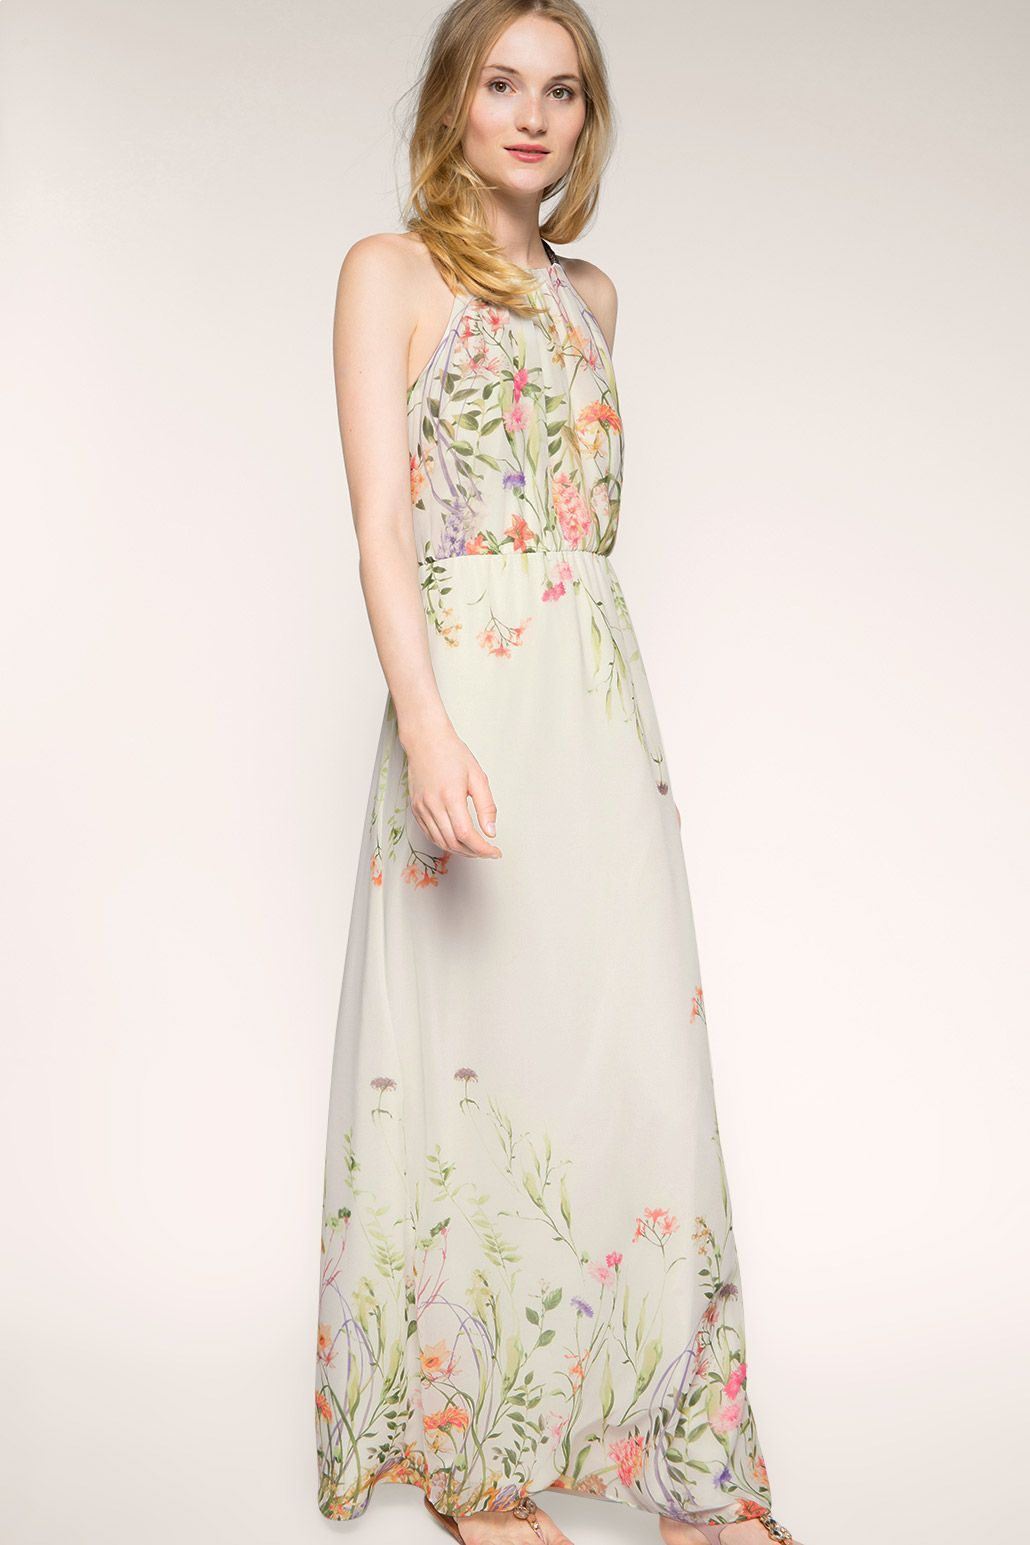 Esprit - flowing floral chiffon maxi dress at our Online Shop